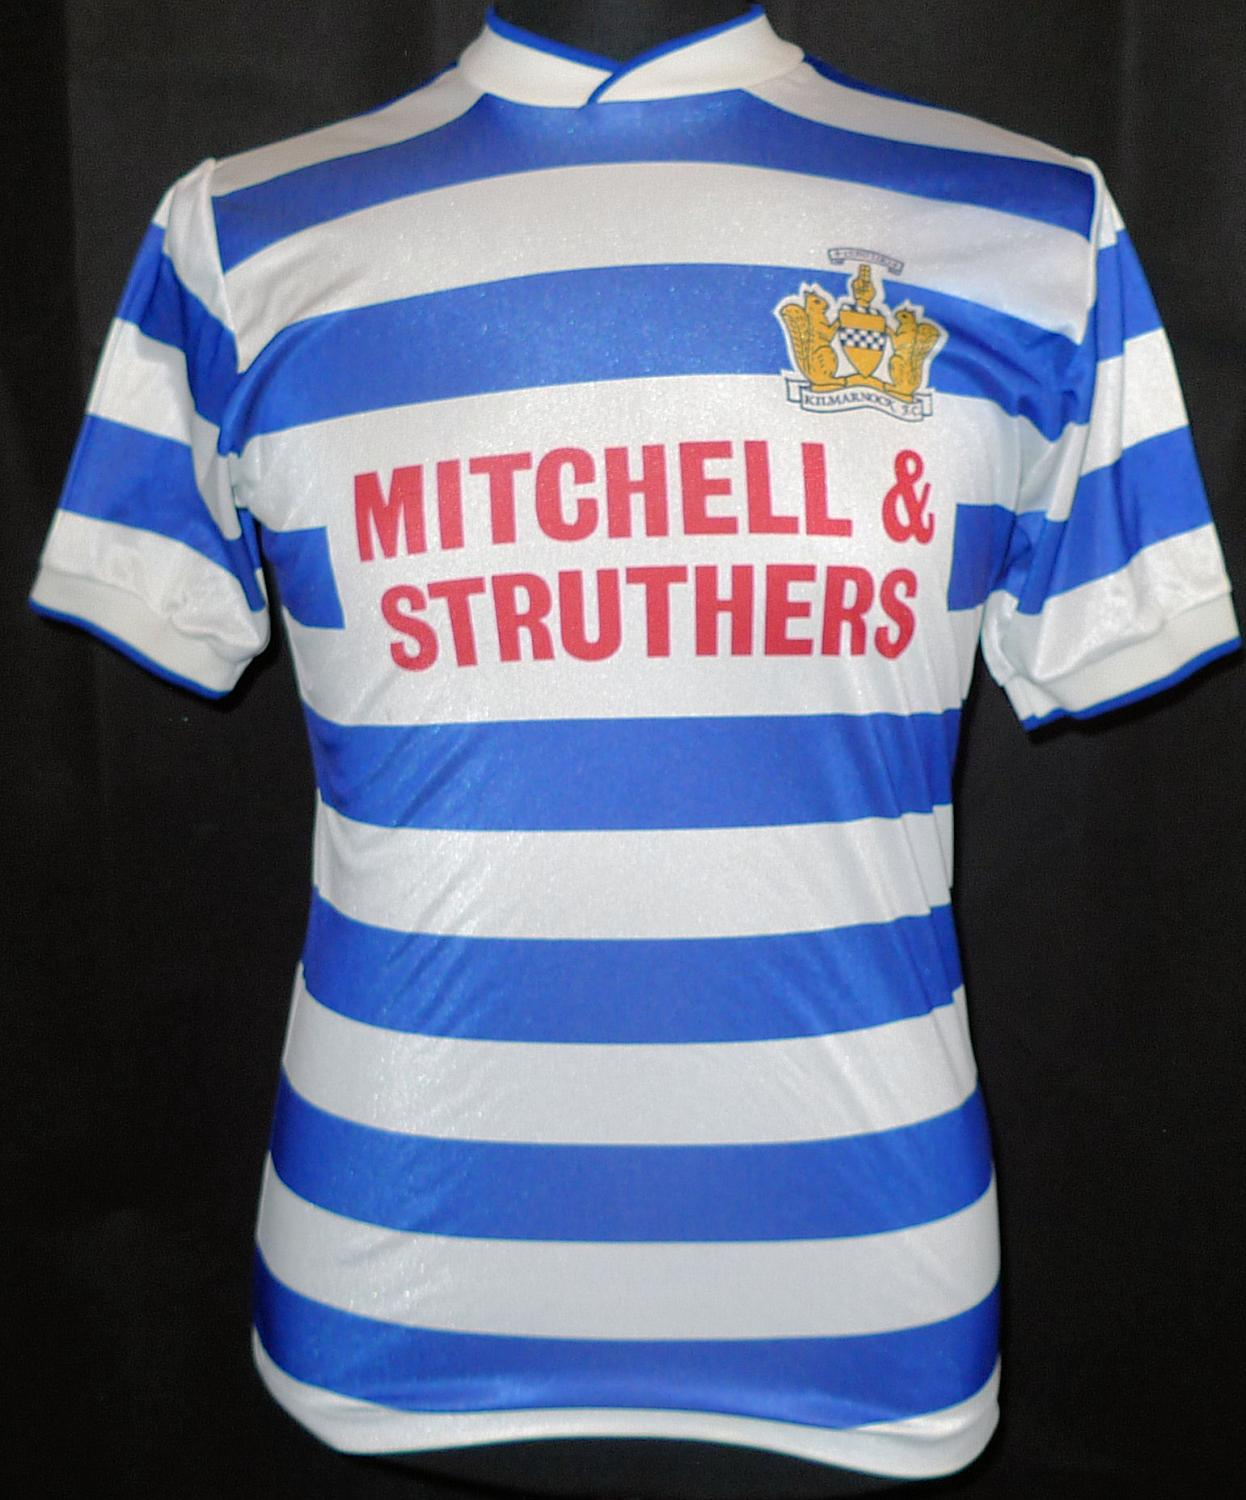 Image result for mitchell and struthers sponsor kilmarnock